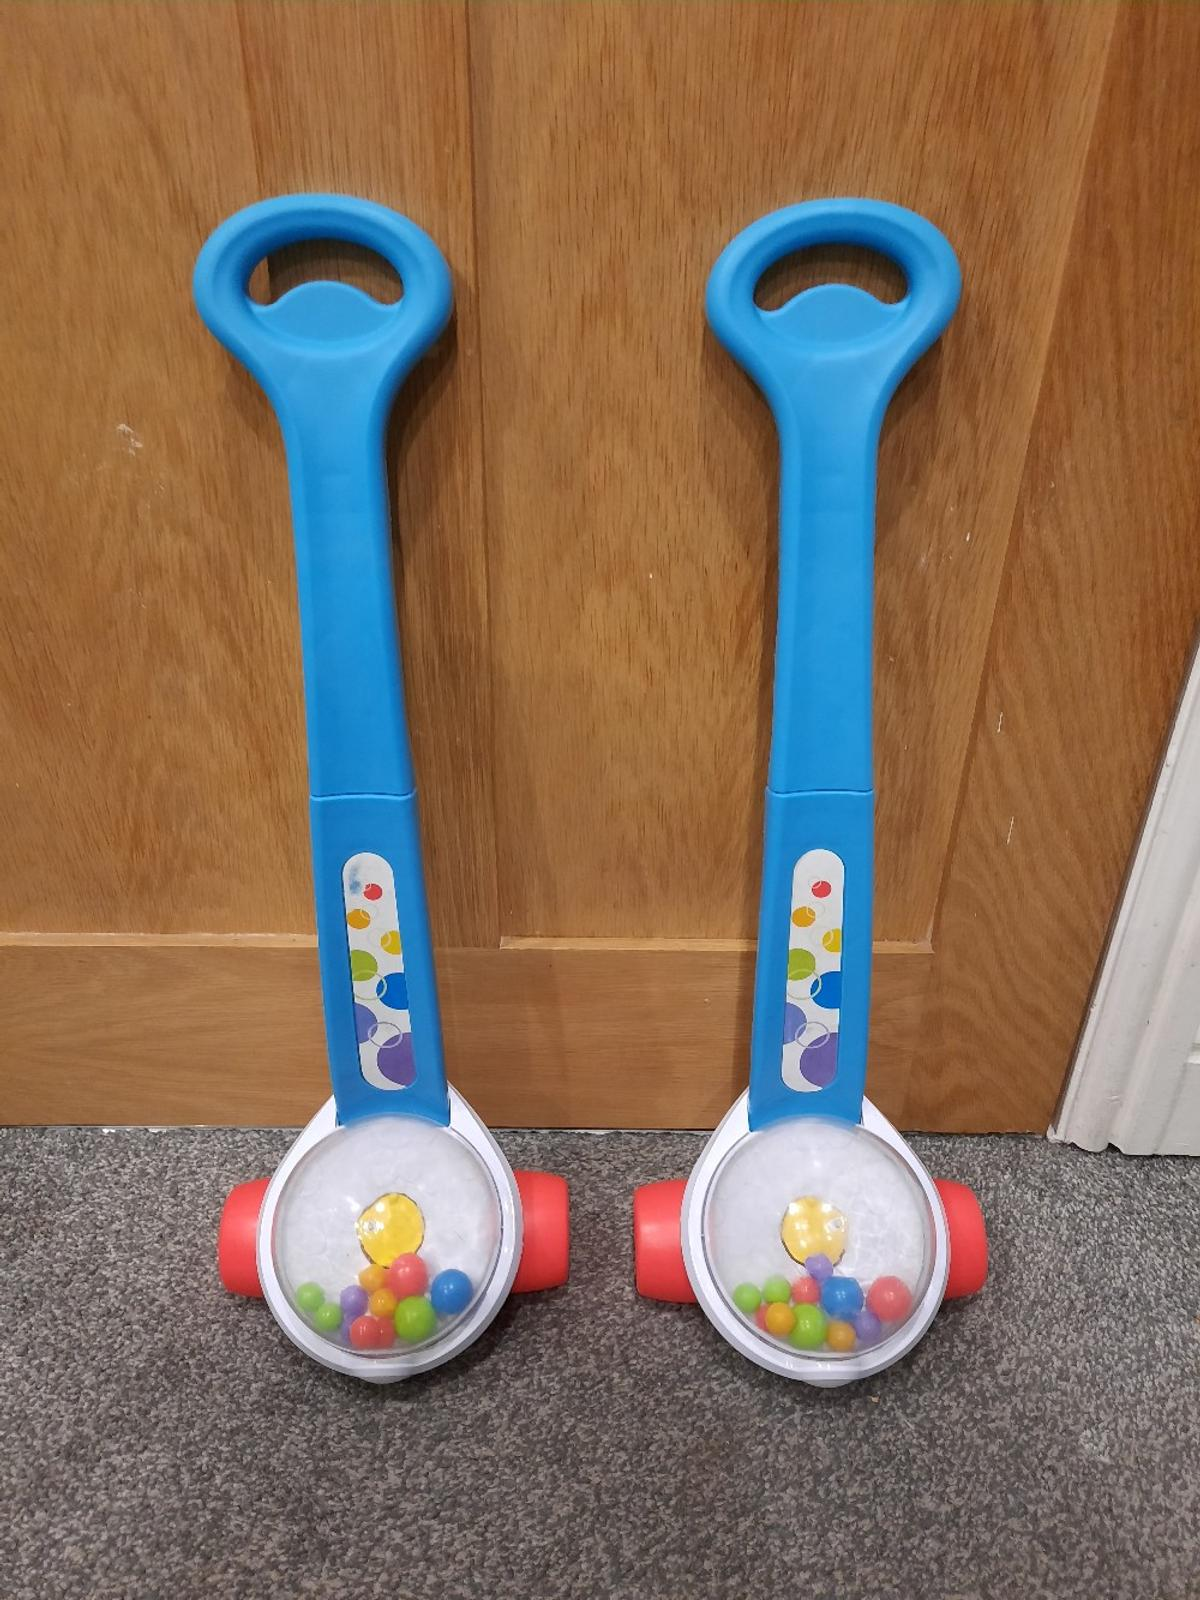 Fisher price corn poppers, used by my girls, still has plenty of use left. I have two, will sell both for £7 or 1 for £4. Smoke and petfree home.  collection only.